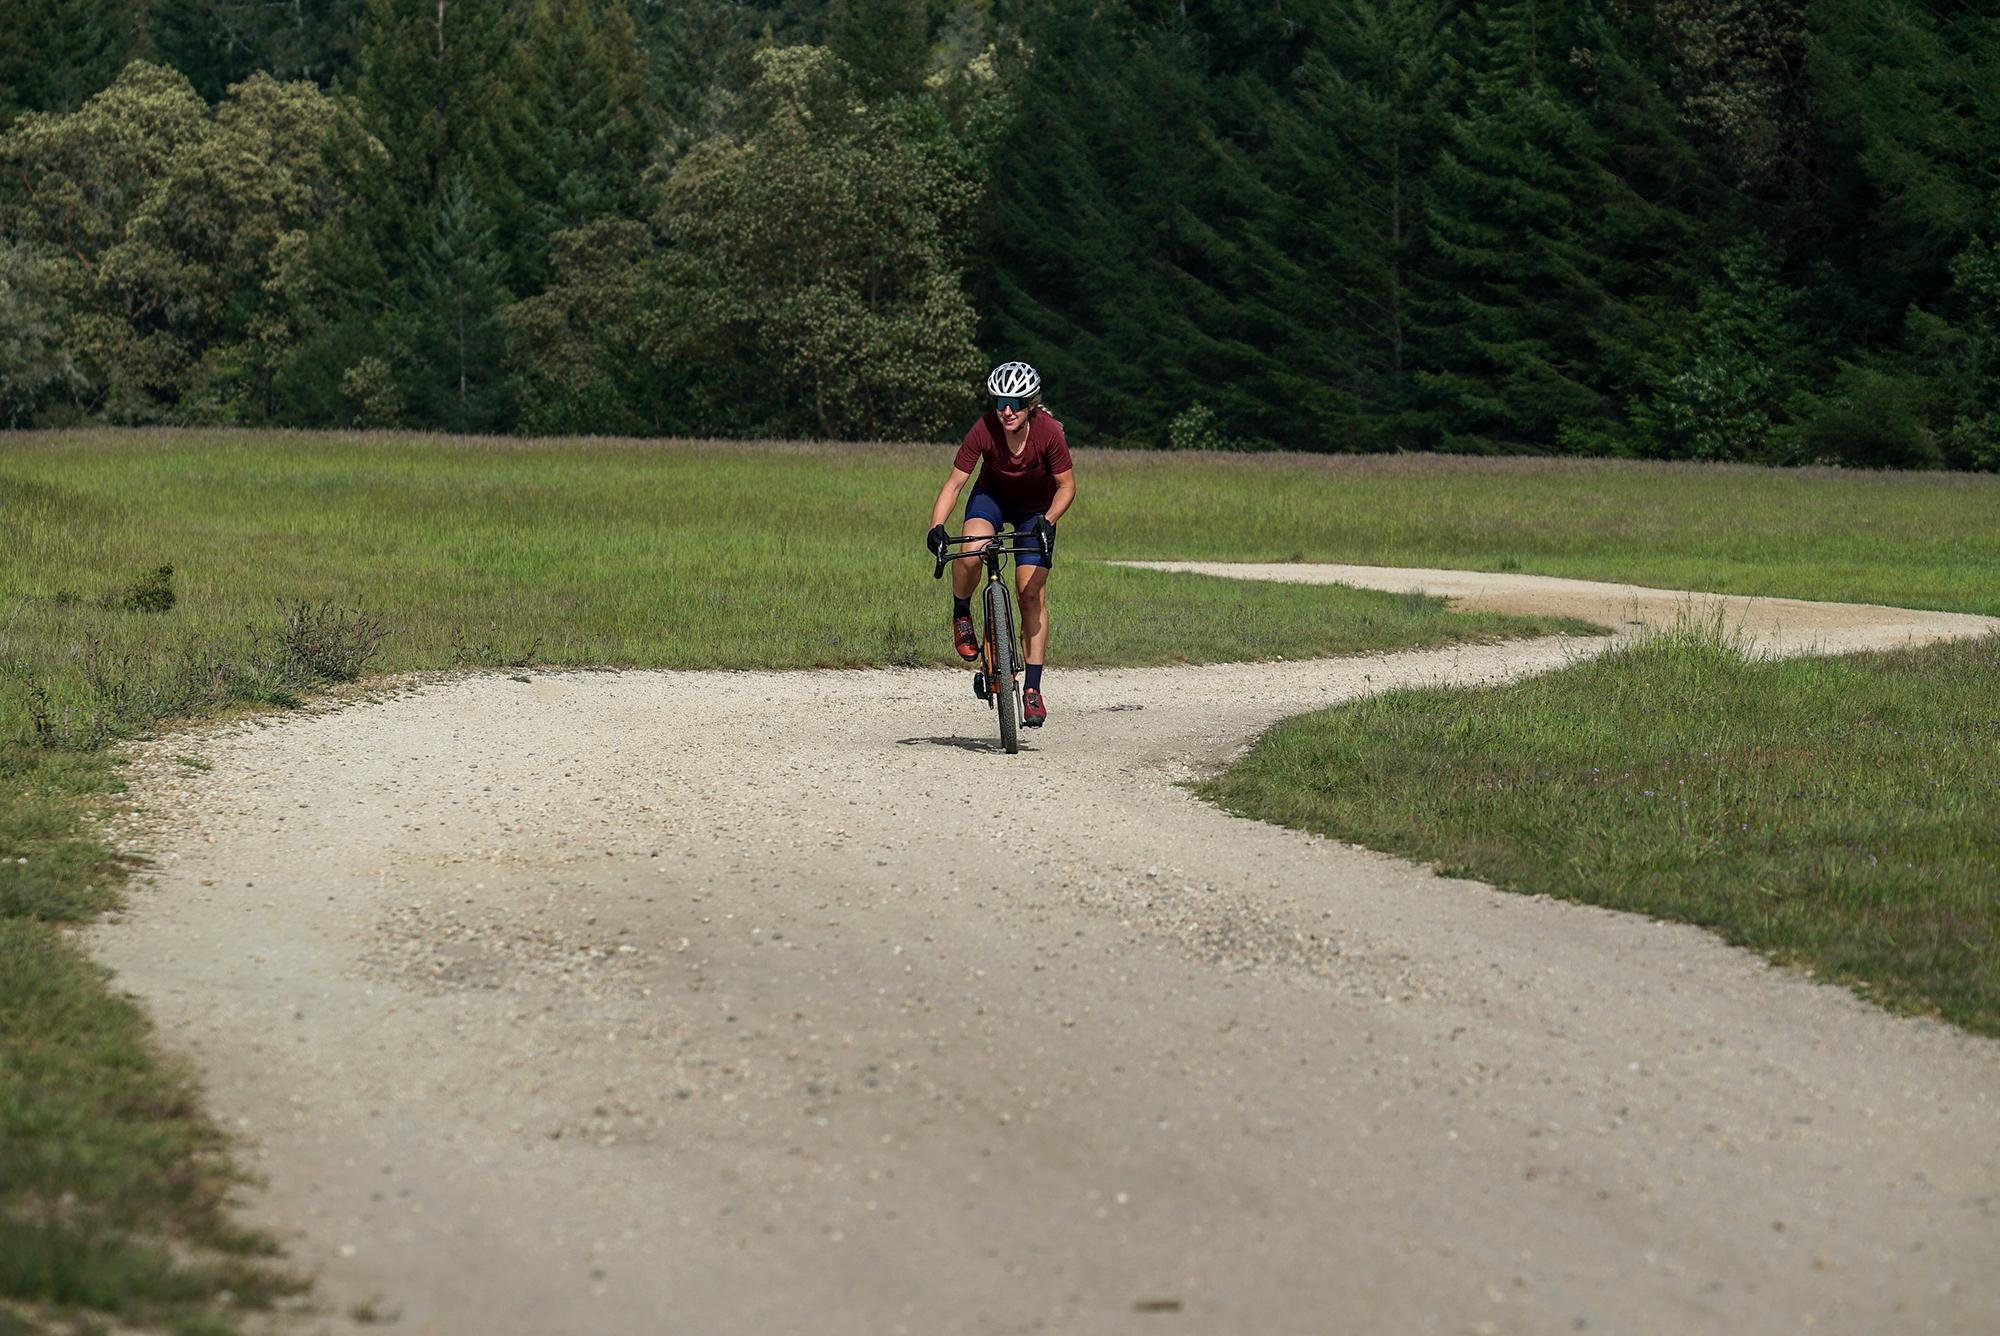 athy has been putting in a lot of long training days in Northern CA to prepare for Unbound Gravel 200.